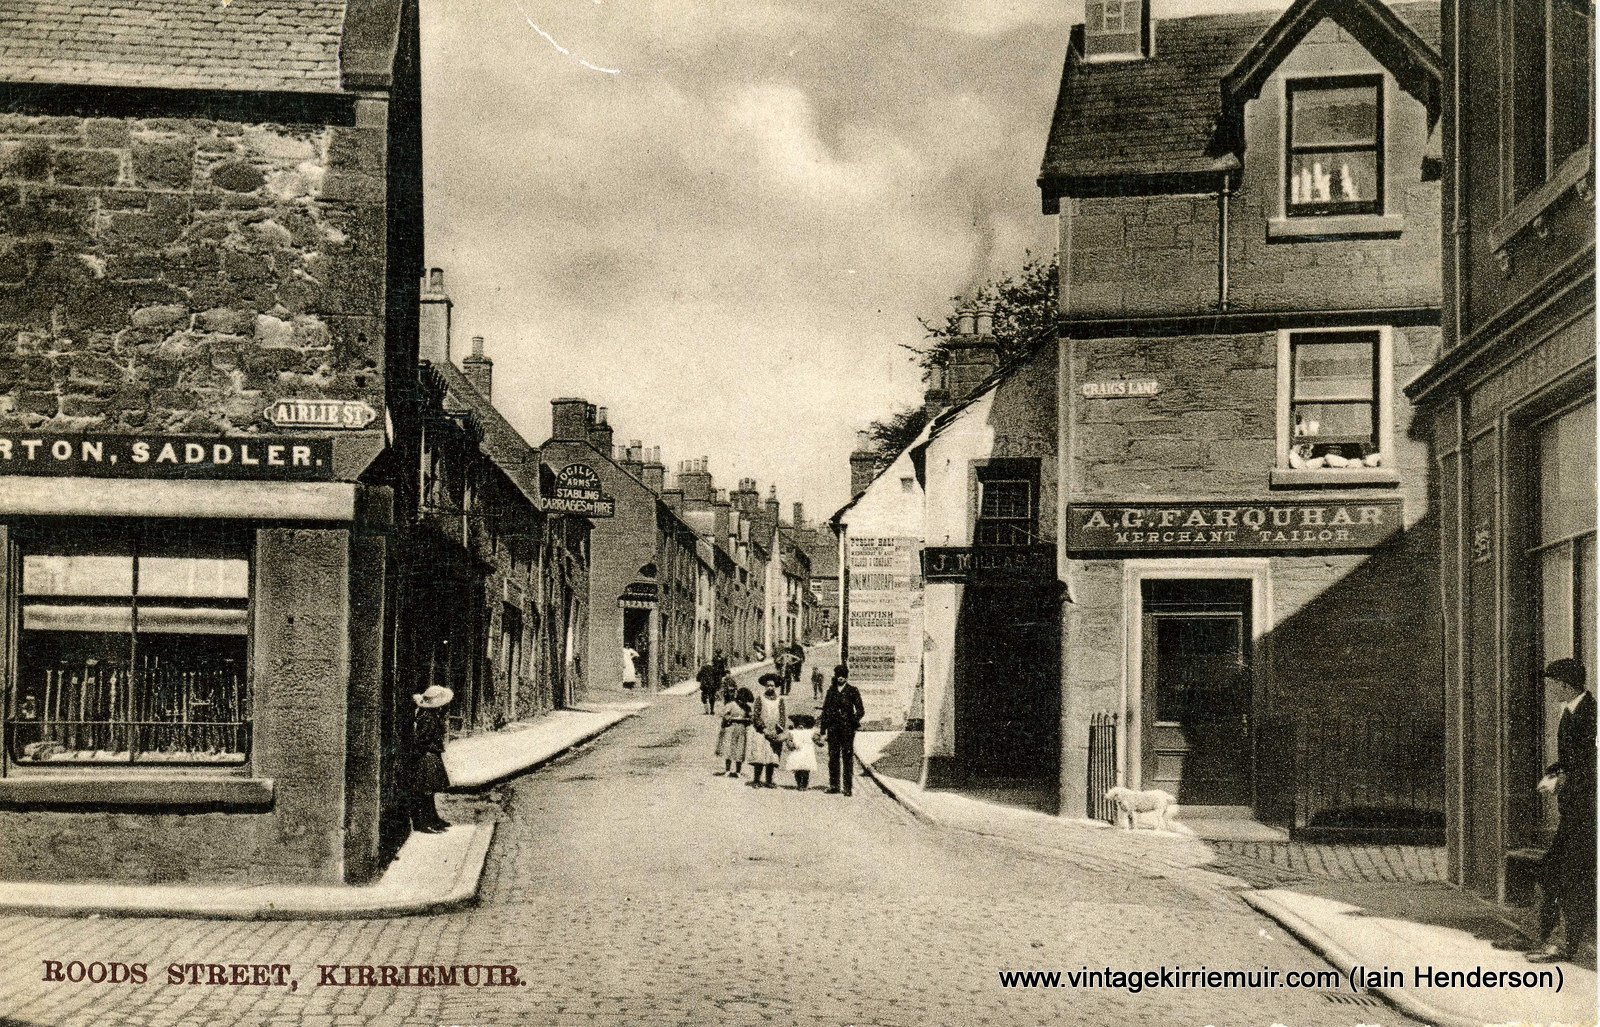 Roods Street, Kirriemuir